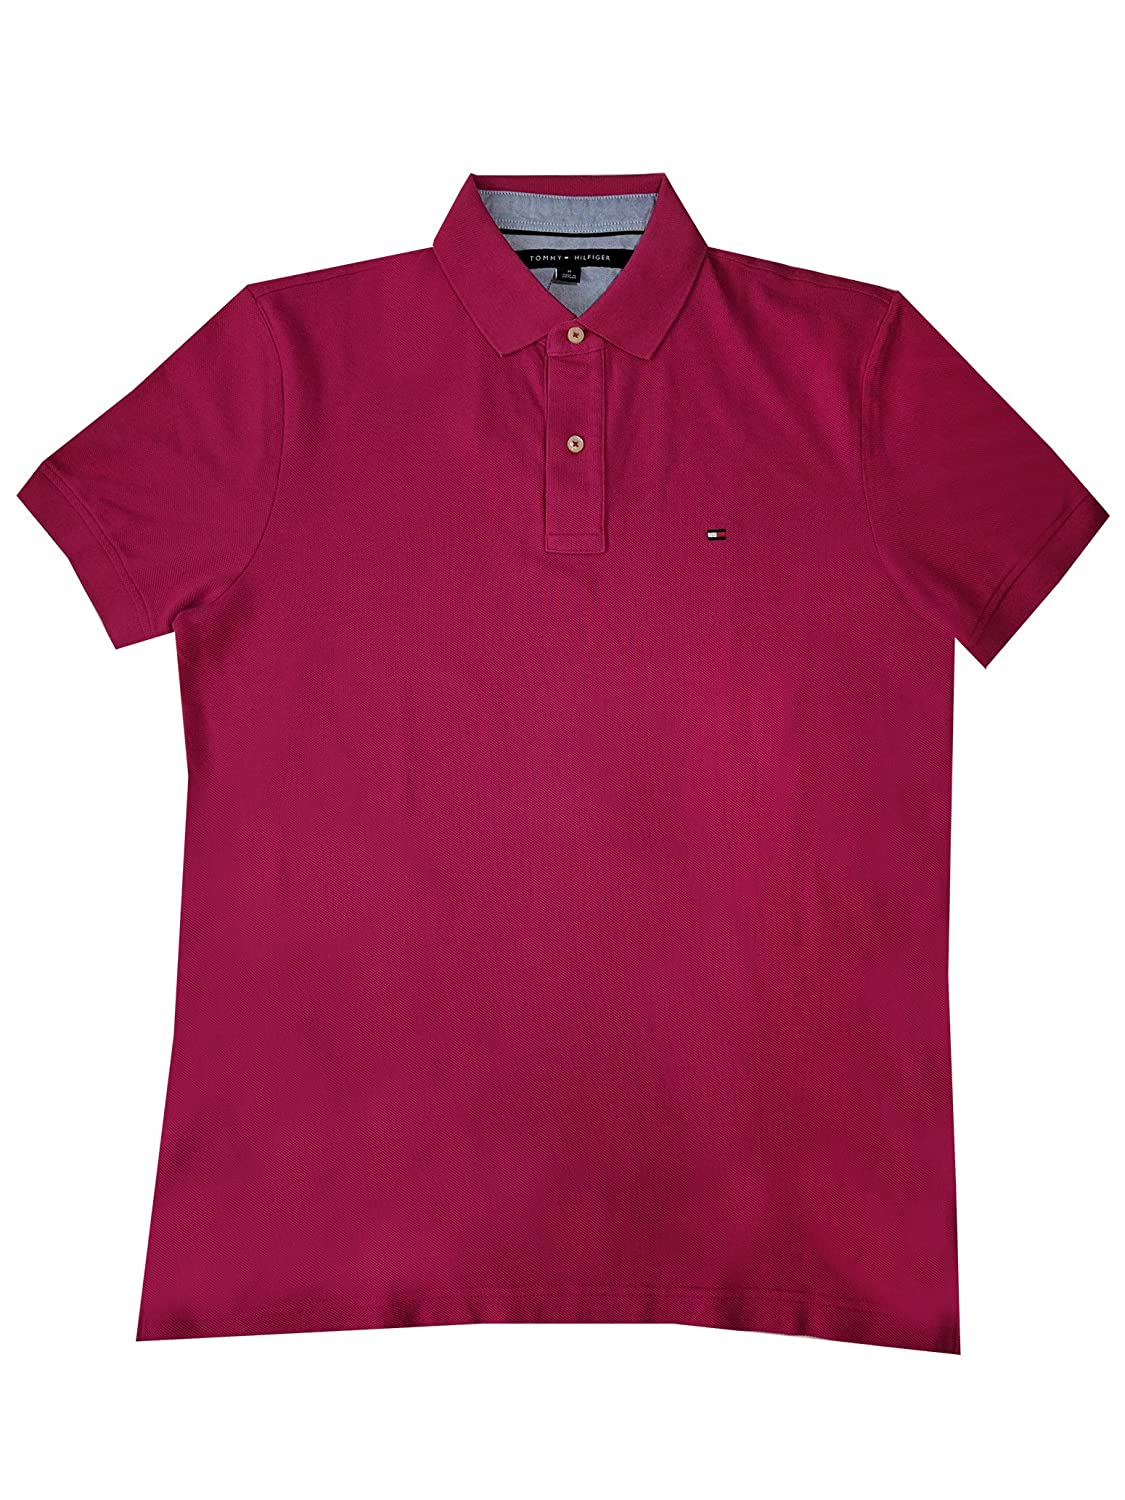 c4491a90 Tommy Hilfiger Mens Custom Fit Solid Color Polo Shirt at Amazon Men's  Clothing store: